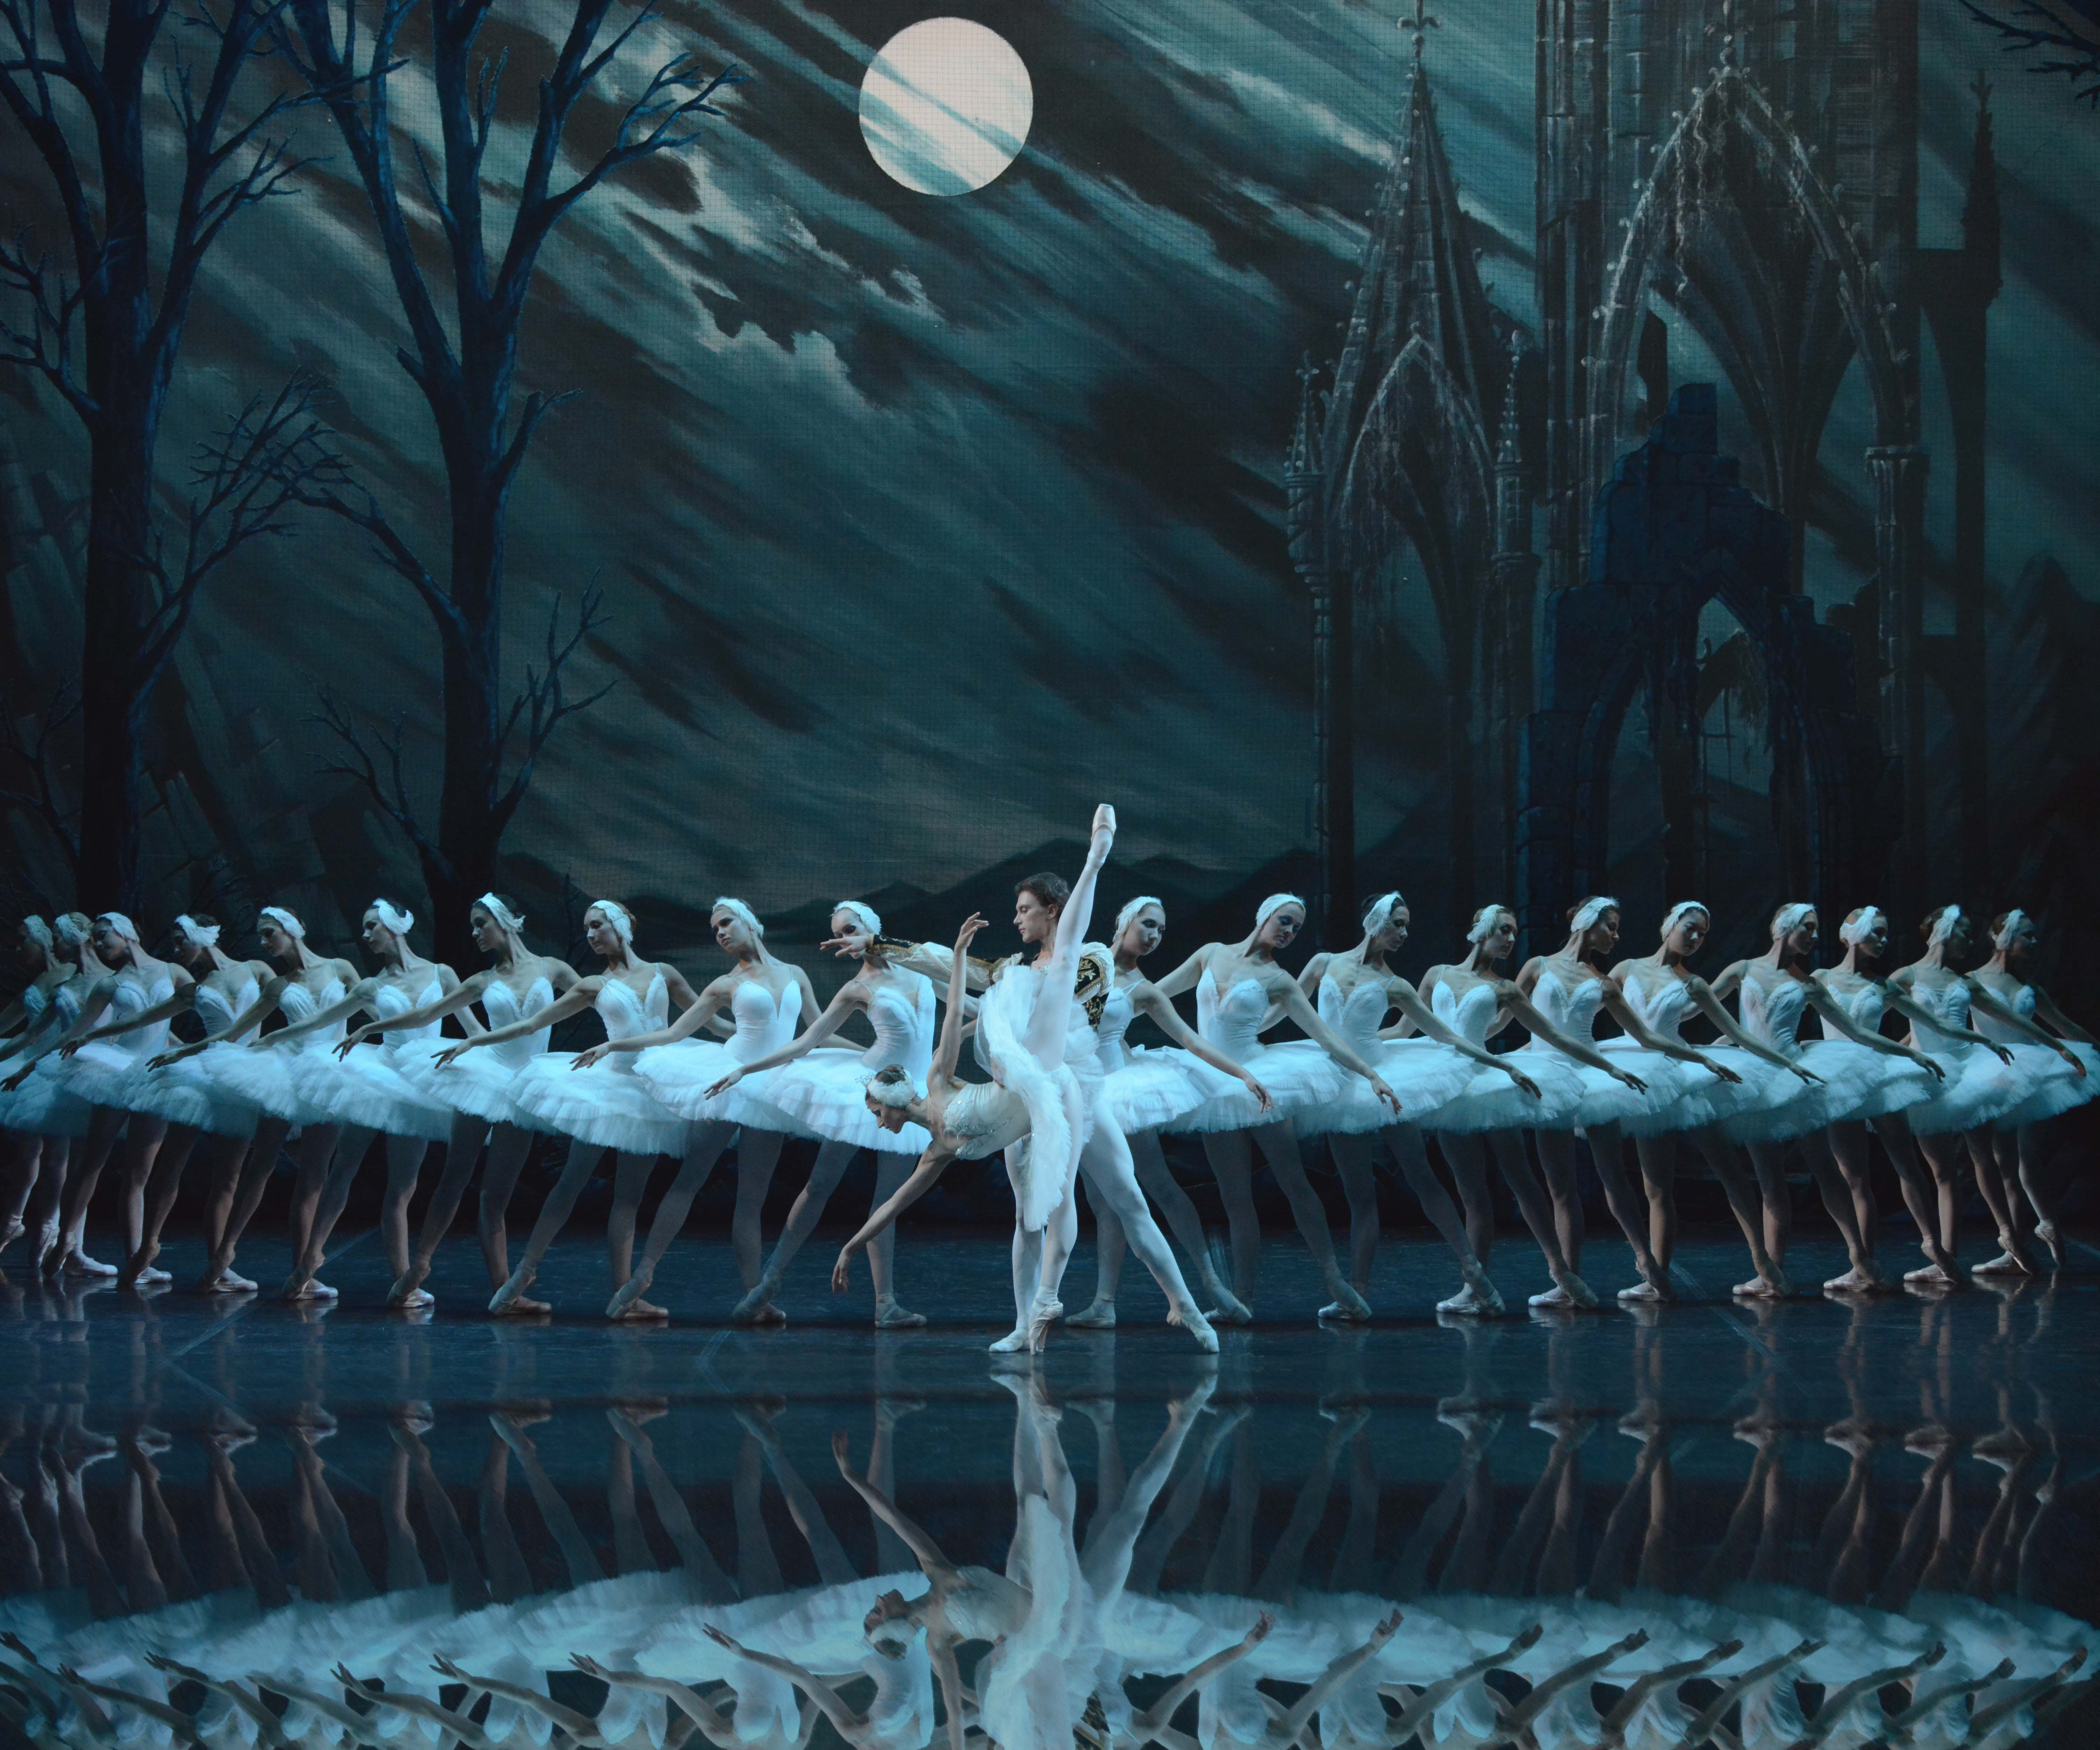 swan lake asian singles Swan lake (russian: лебединое озеро lebedinoye ozero), op 20, is a ballet composed by pyotr ilyich tchaikovsky in 1875–76 despite its initial failure, it is now one of the most popular of all ballets the scenario, initially in two acts, was fashioned from russian and/or german folk tales and tells the story of odette, a princess turned into a swan.